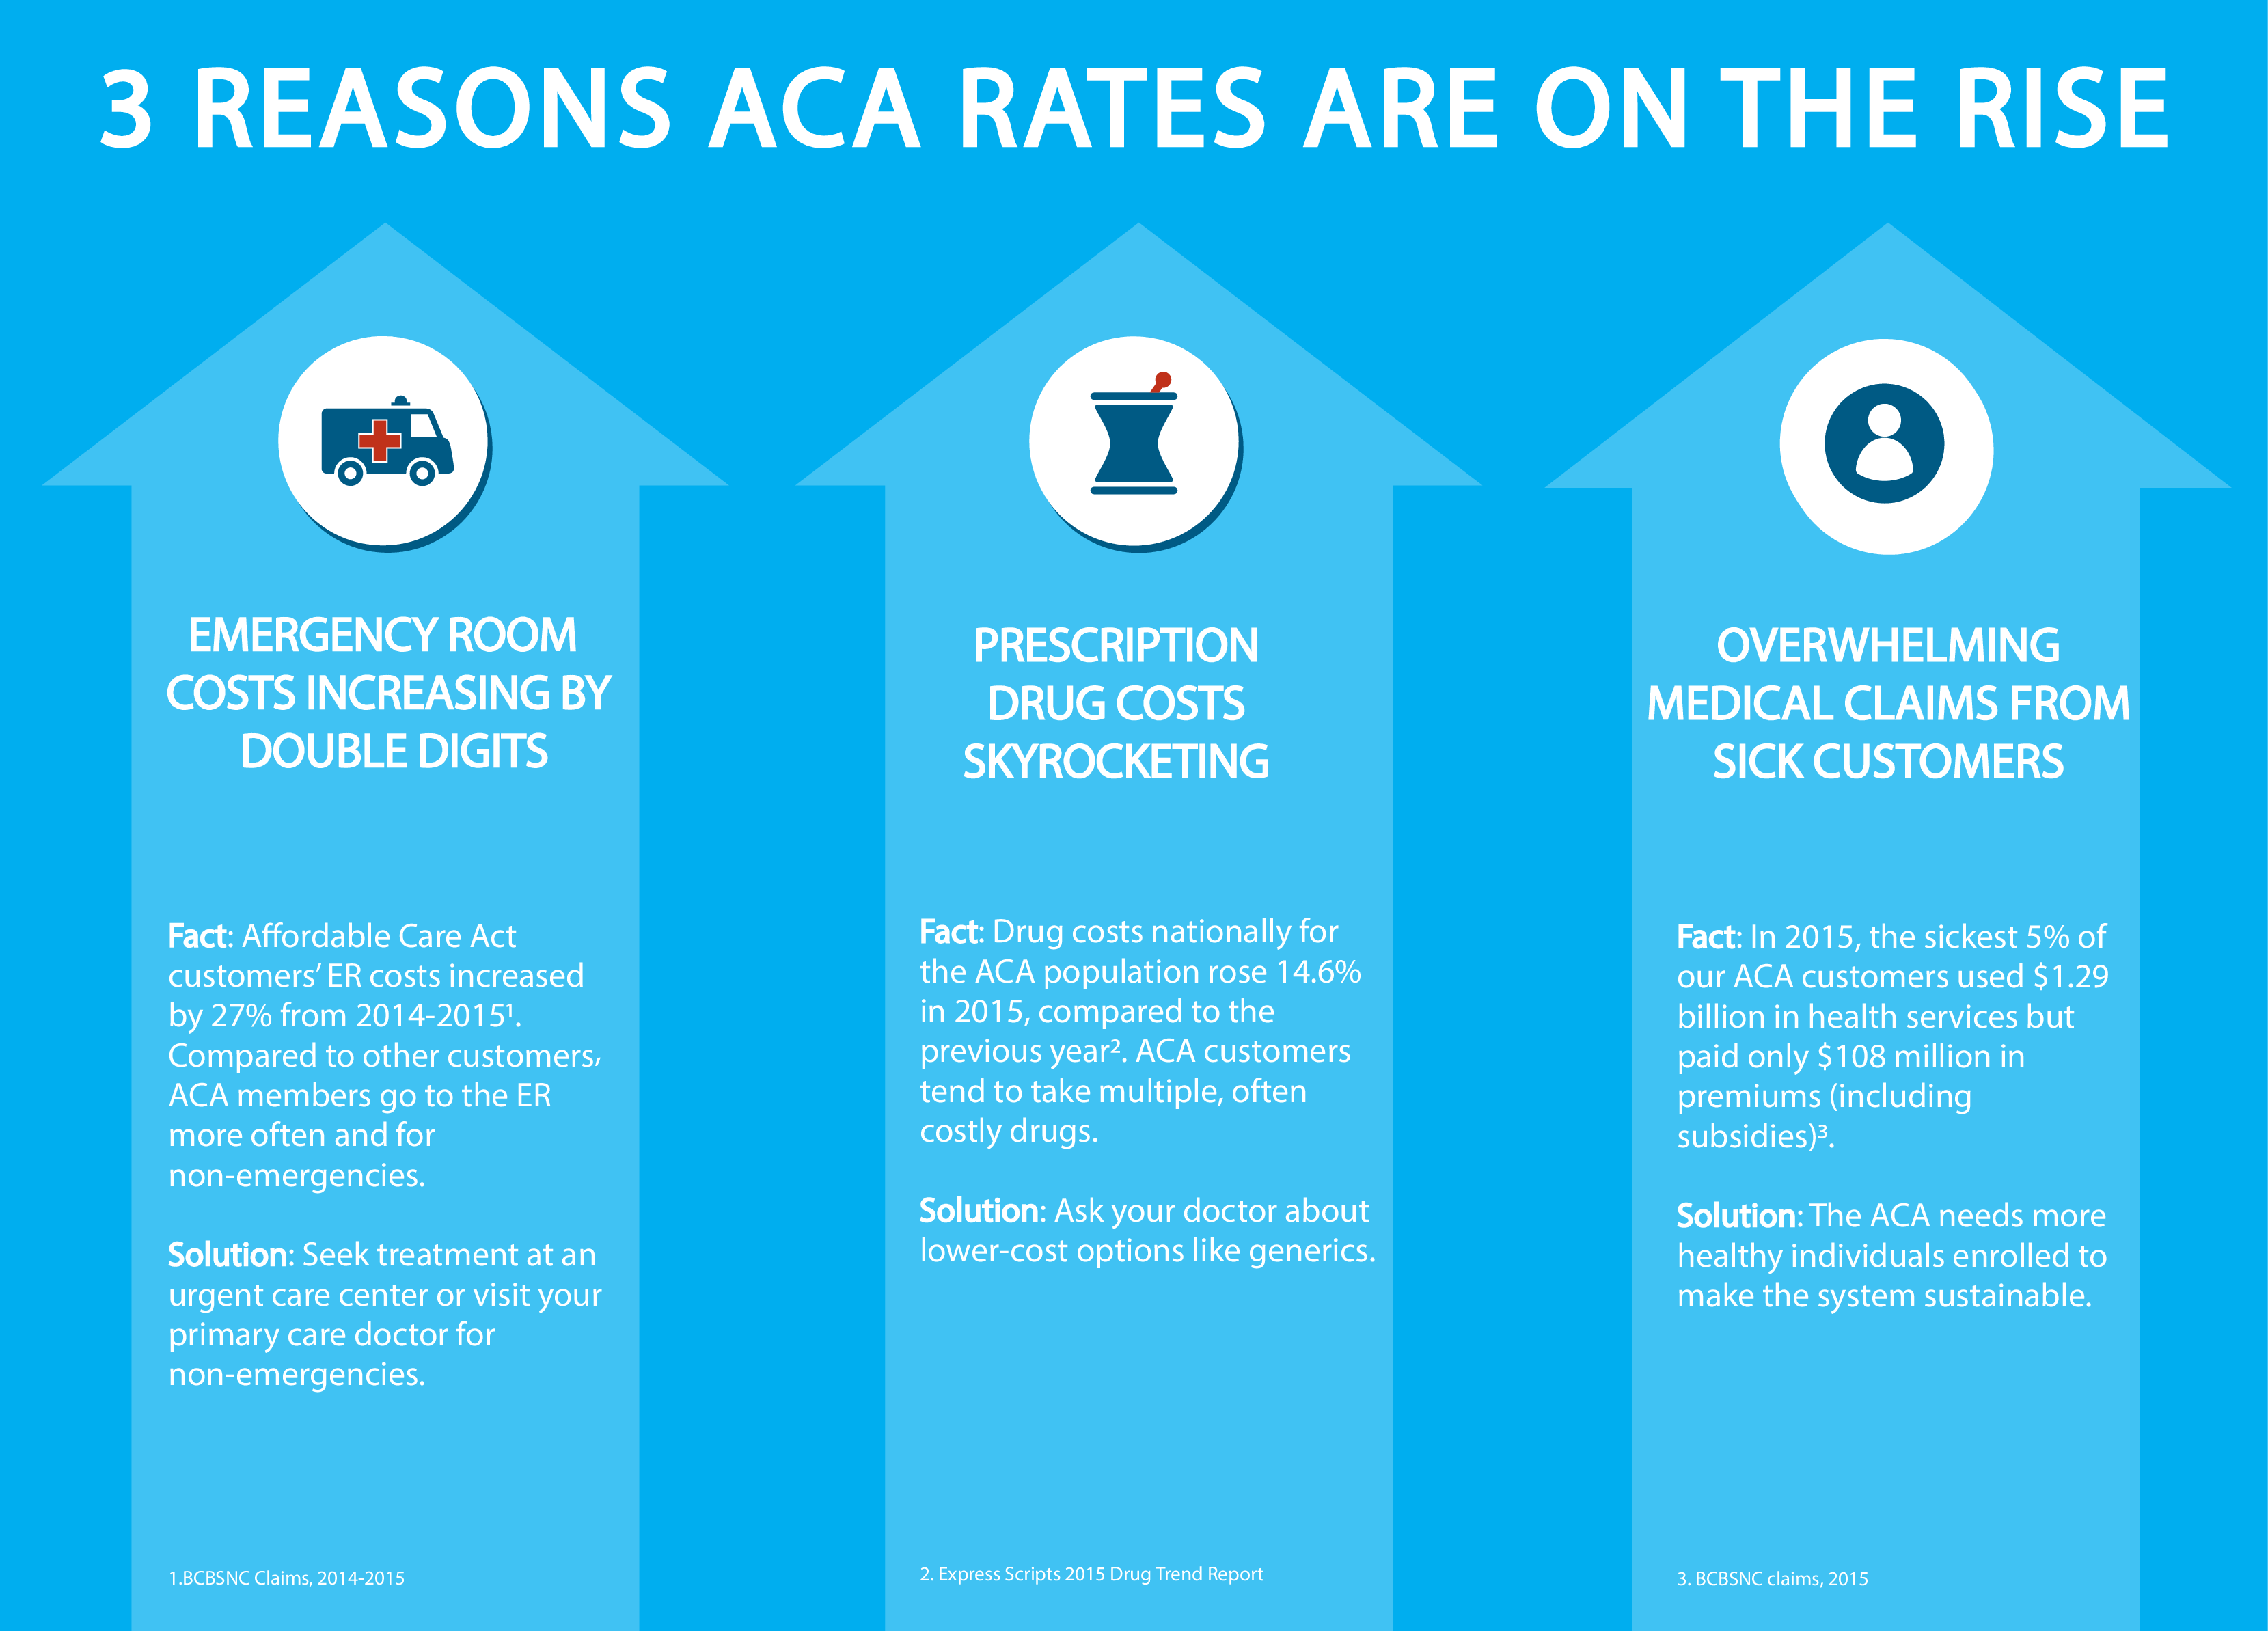 3 Reasons ACA Rates Are High